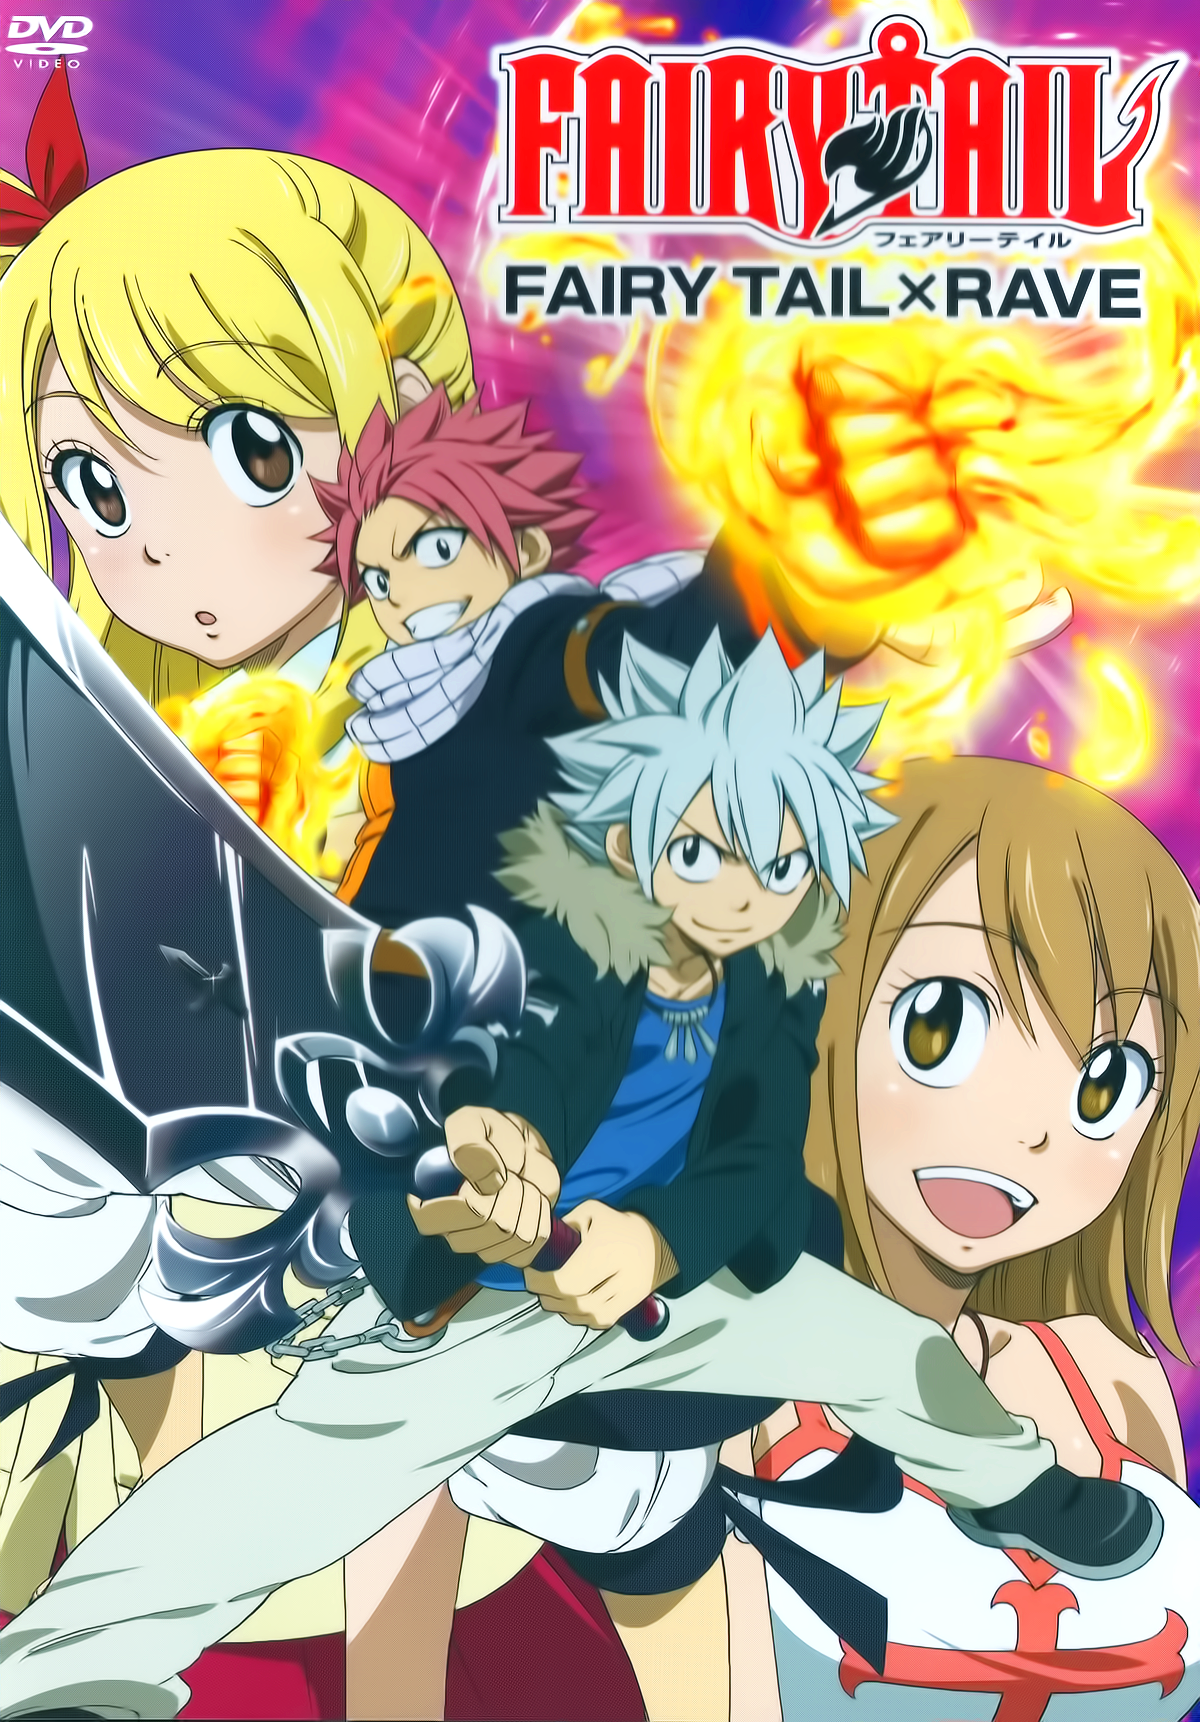 Fairy Tail x Rave (OVA) /// Genres Action, Adventure